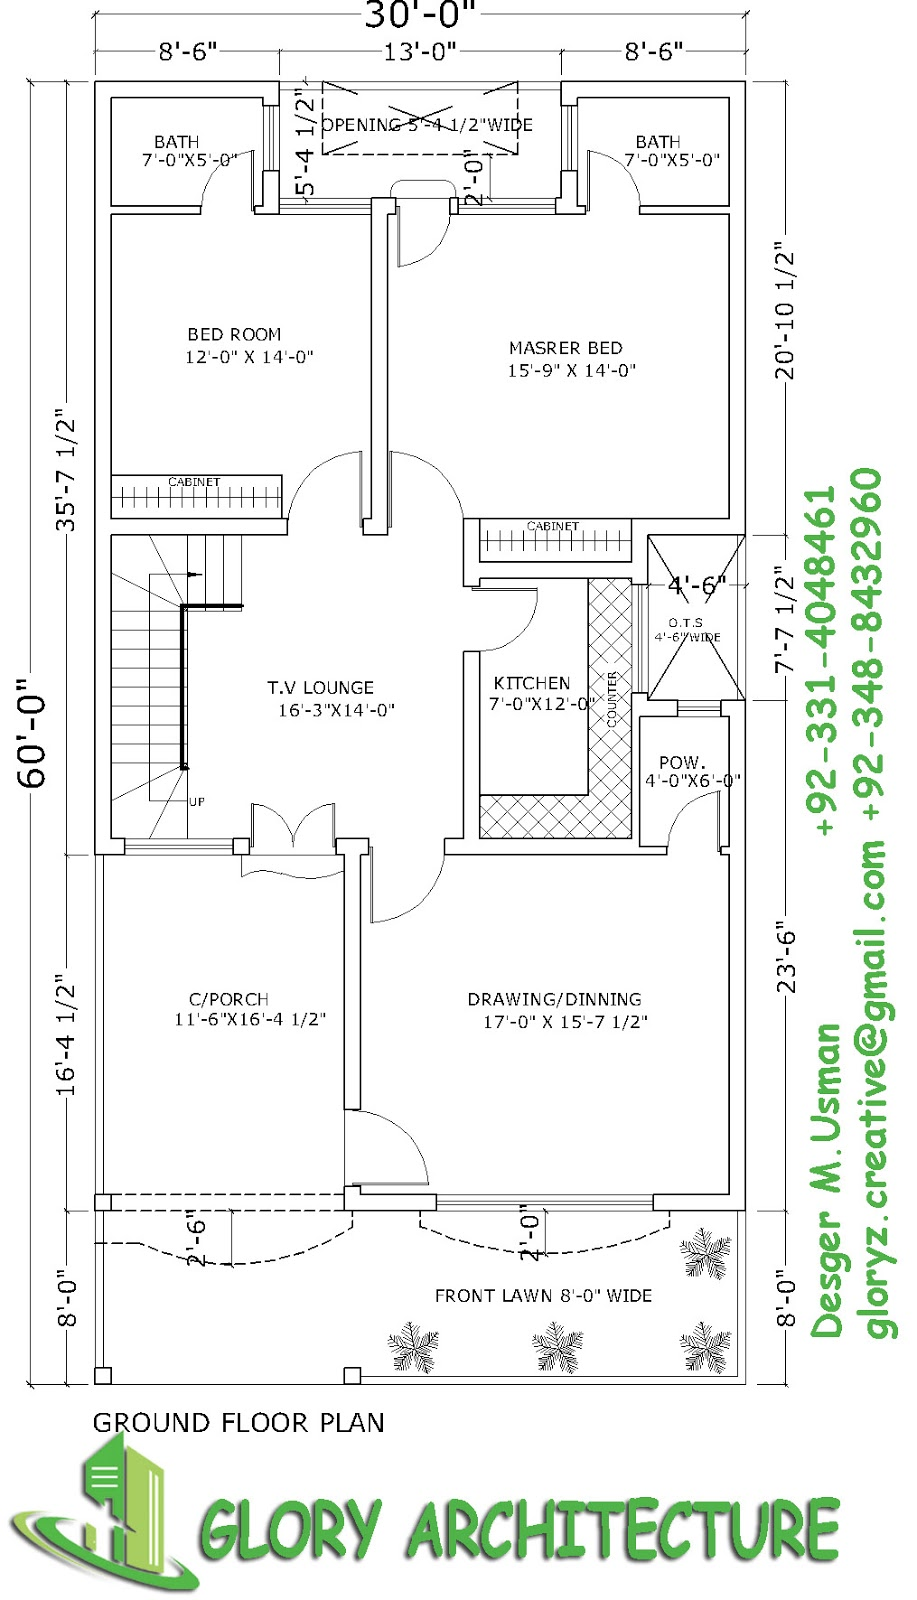 30x60 house plan,elevation,3D view, drawings, Pakistan ...